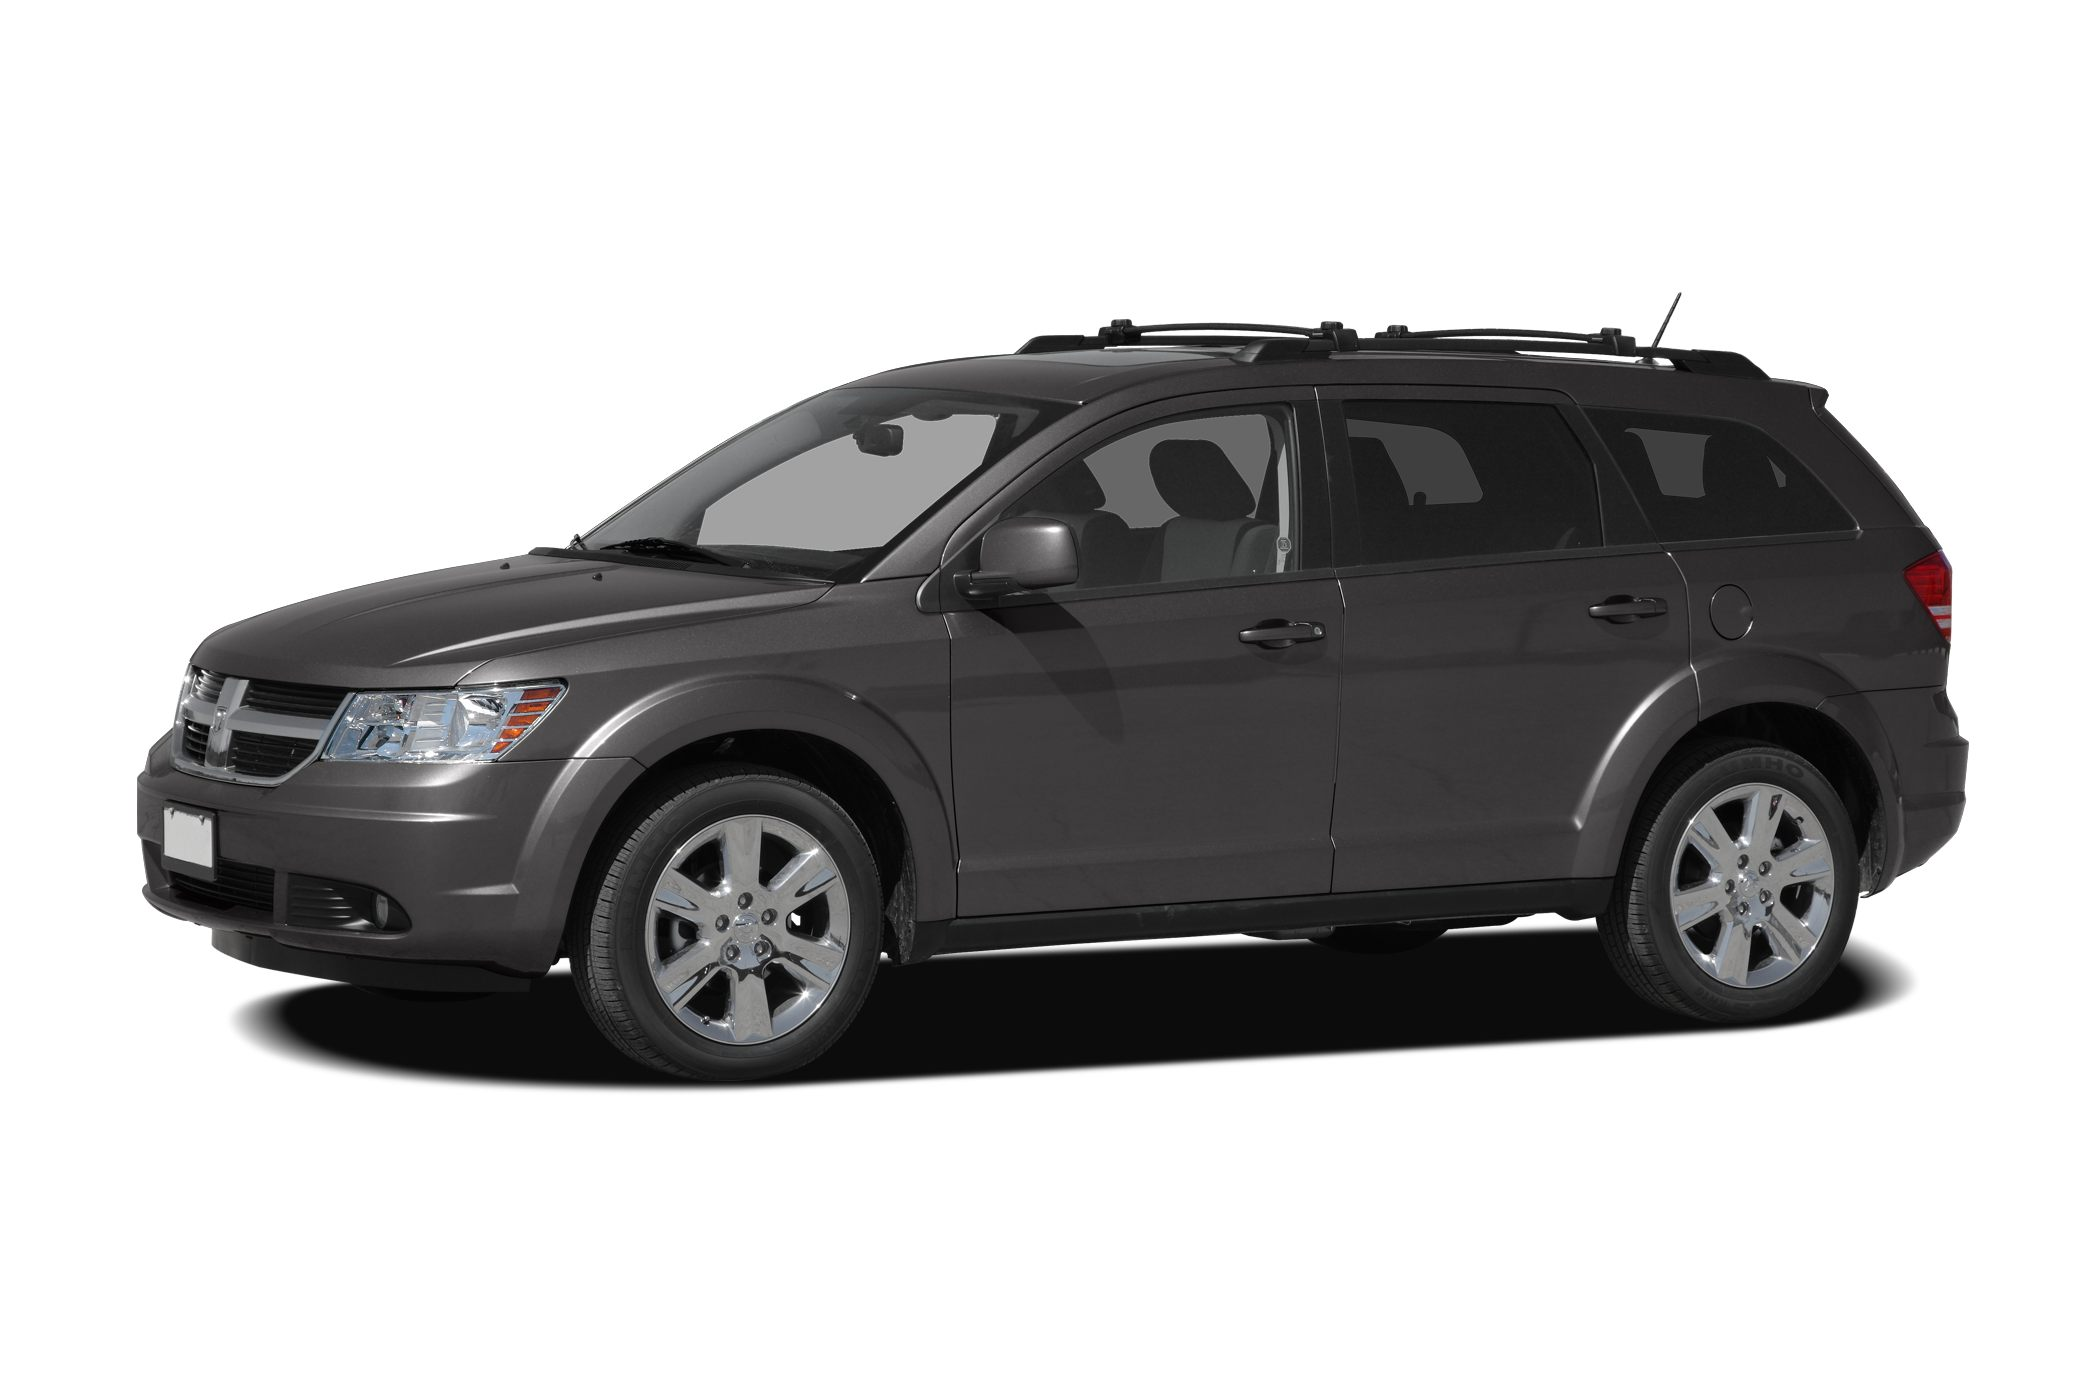 2010 Dodge Journey SE SUV for sale in Crossville for $11,850 with 107,737 miles